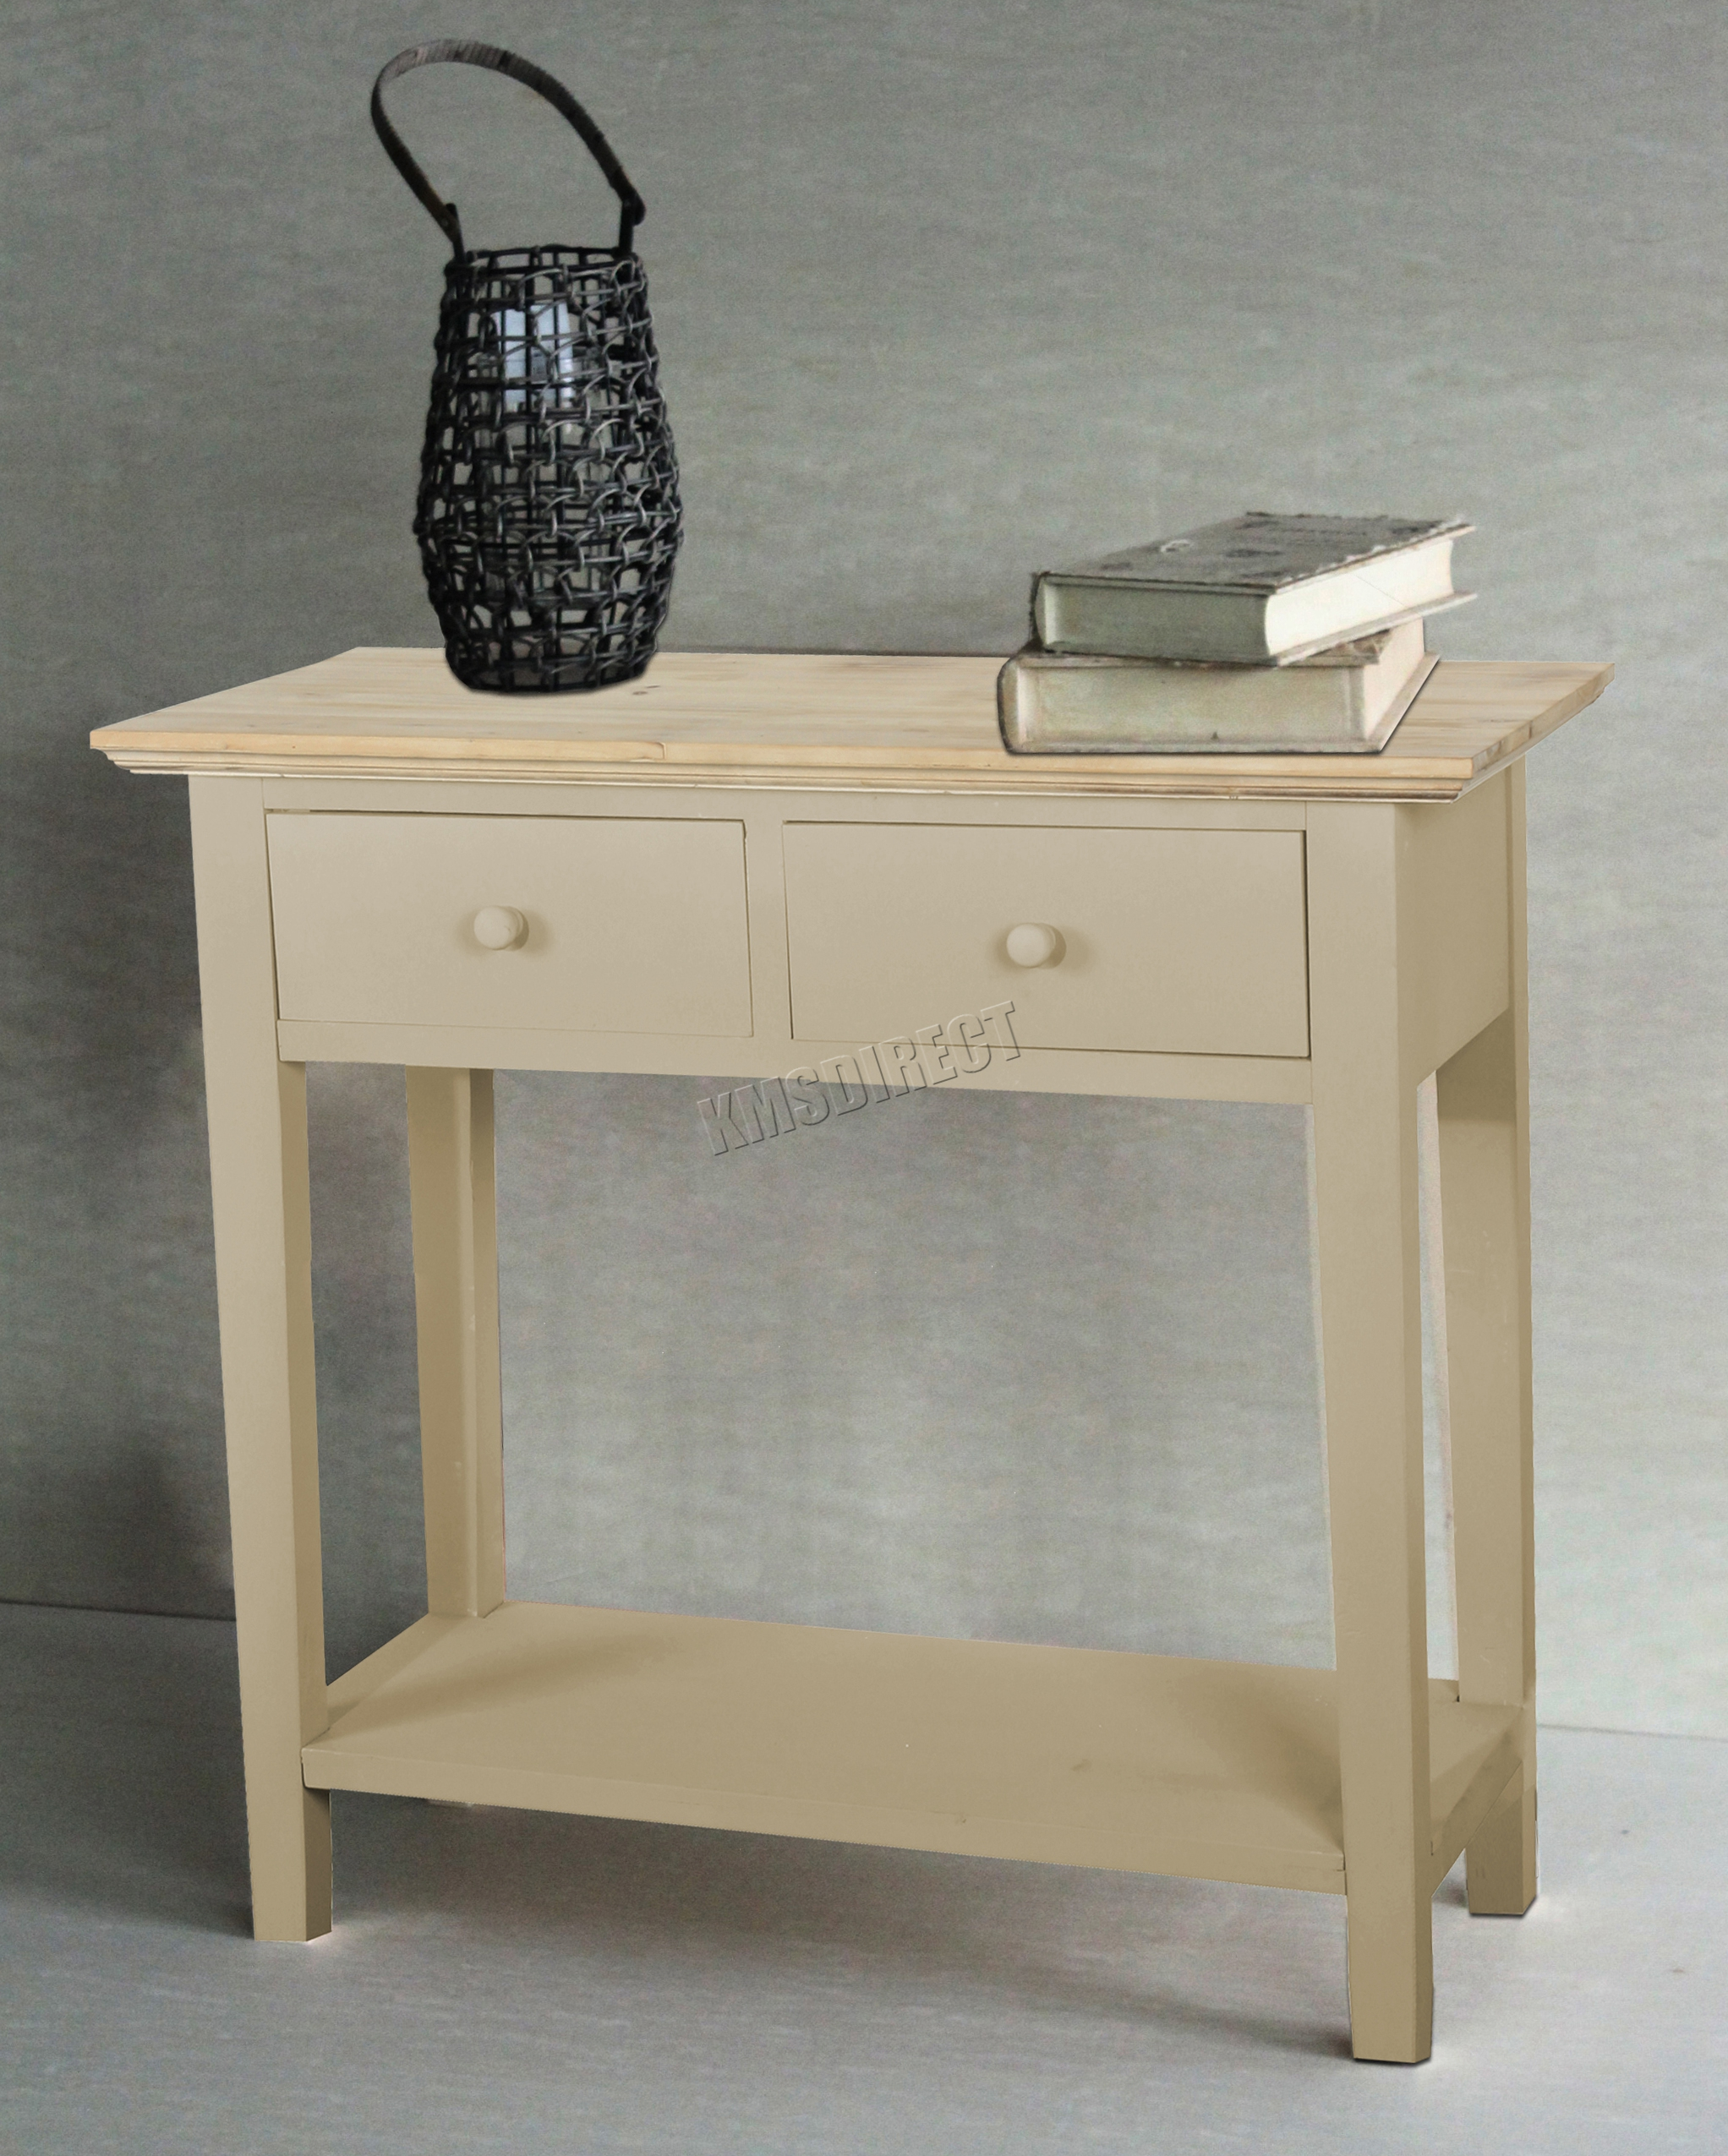 Sentinel foxhunter console table 2 drawers wood hallway side storage hall kitchen ctw01